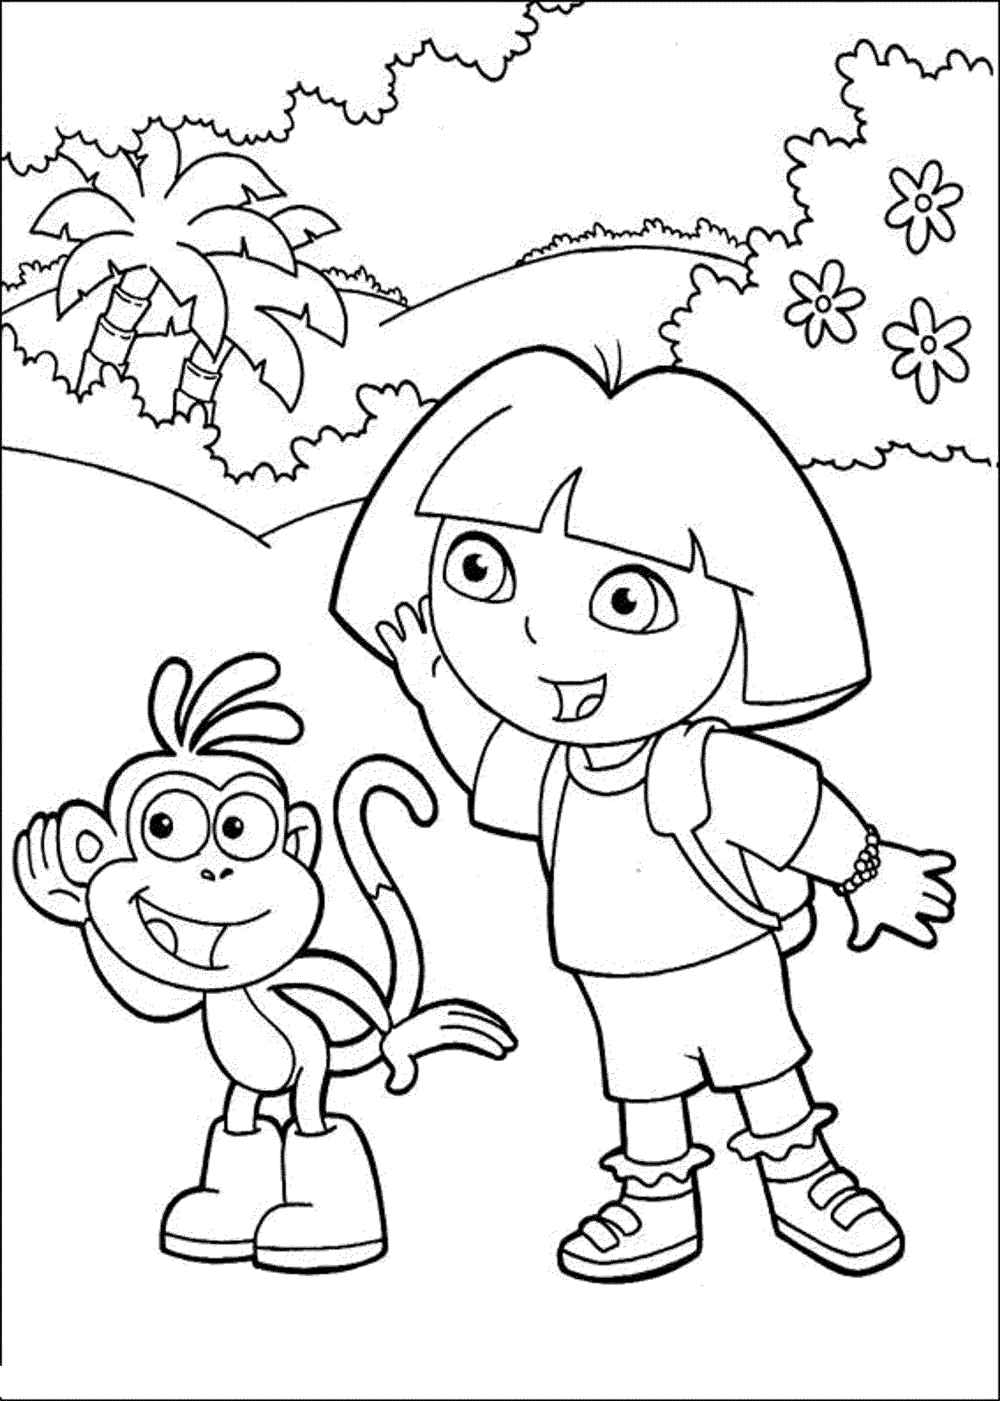 coloring pages of dora free printable dora the explorer coloring pages for kids dora of pages coloring